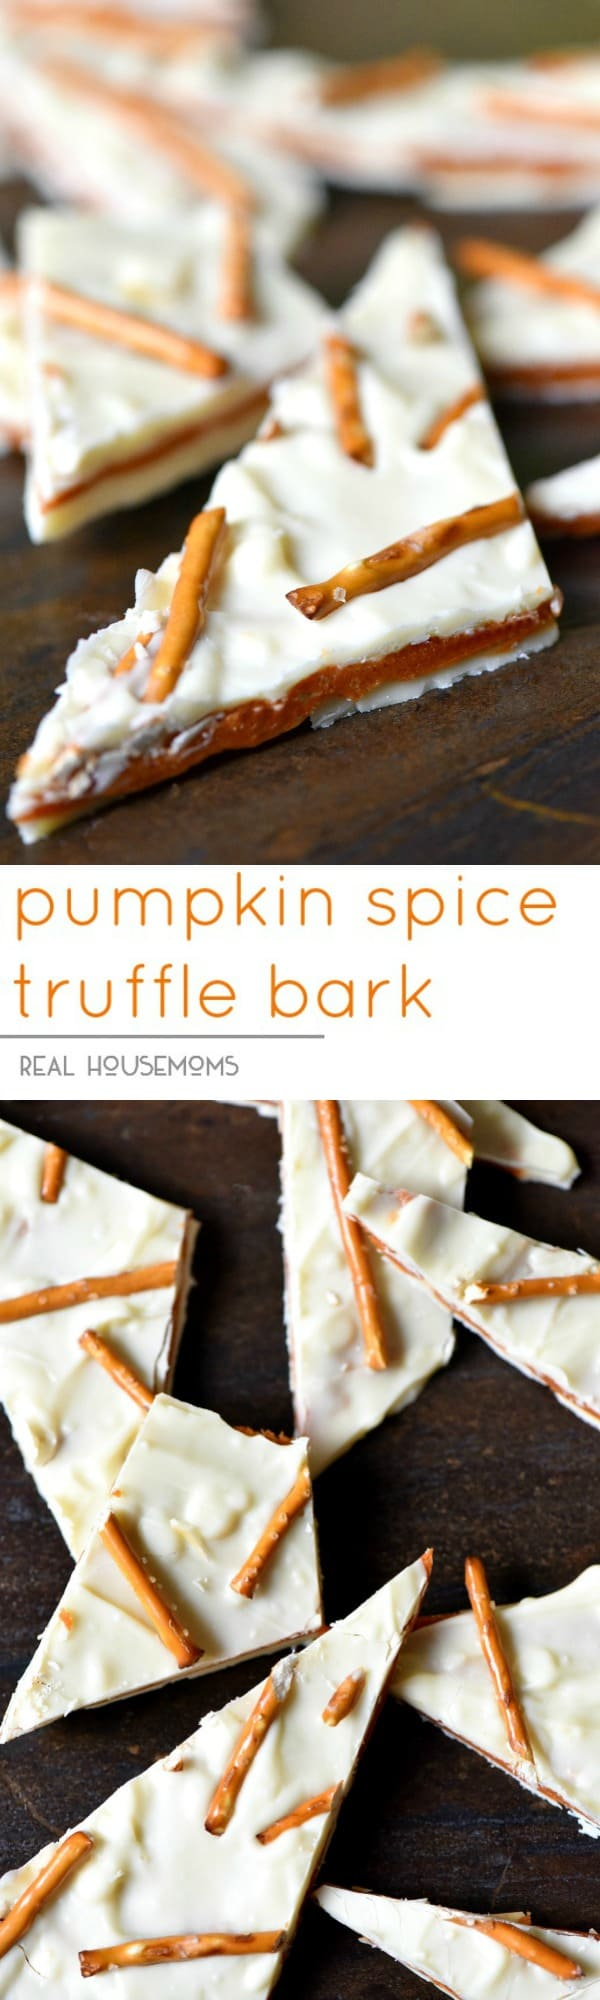 Pumpkin Spice Truffle Bark is a must make easy fall dessert!